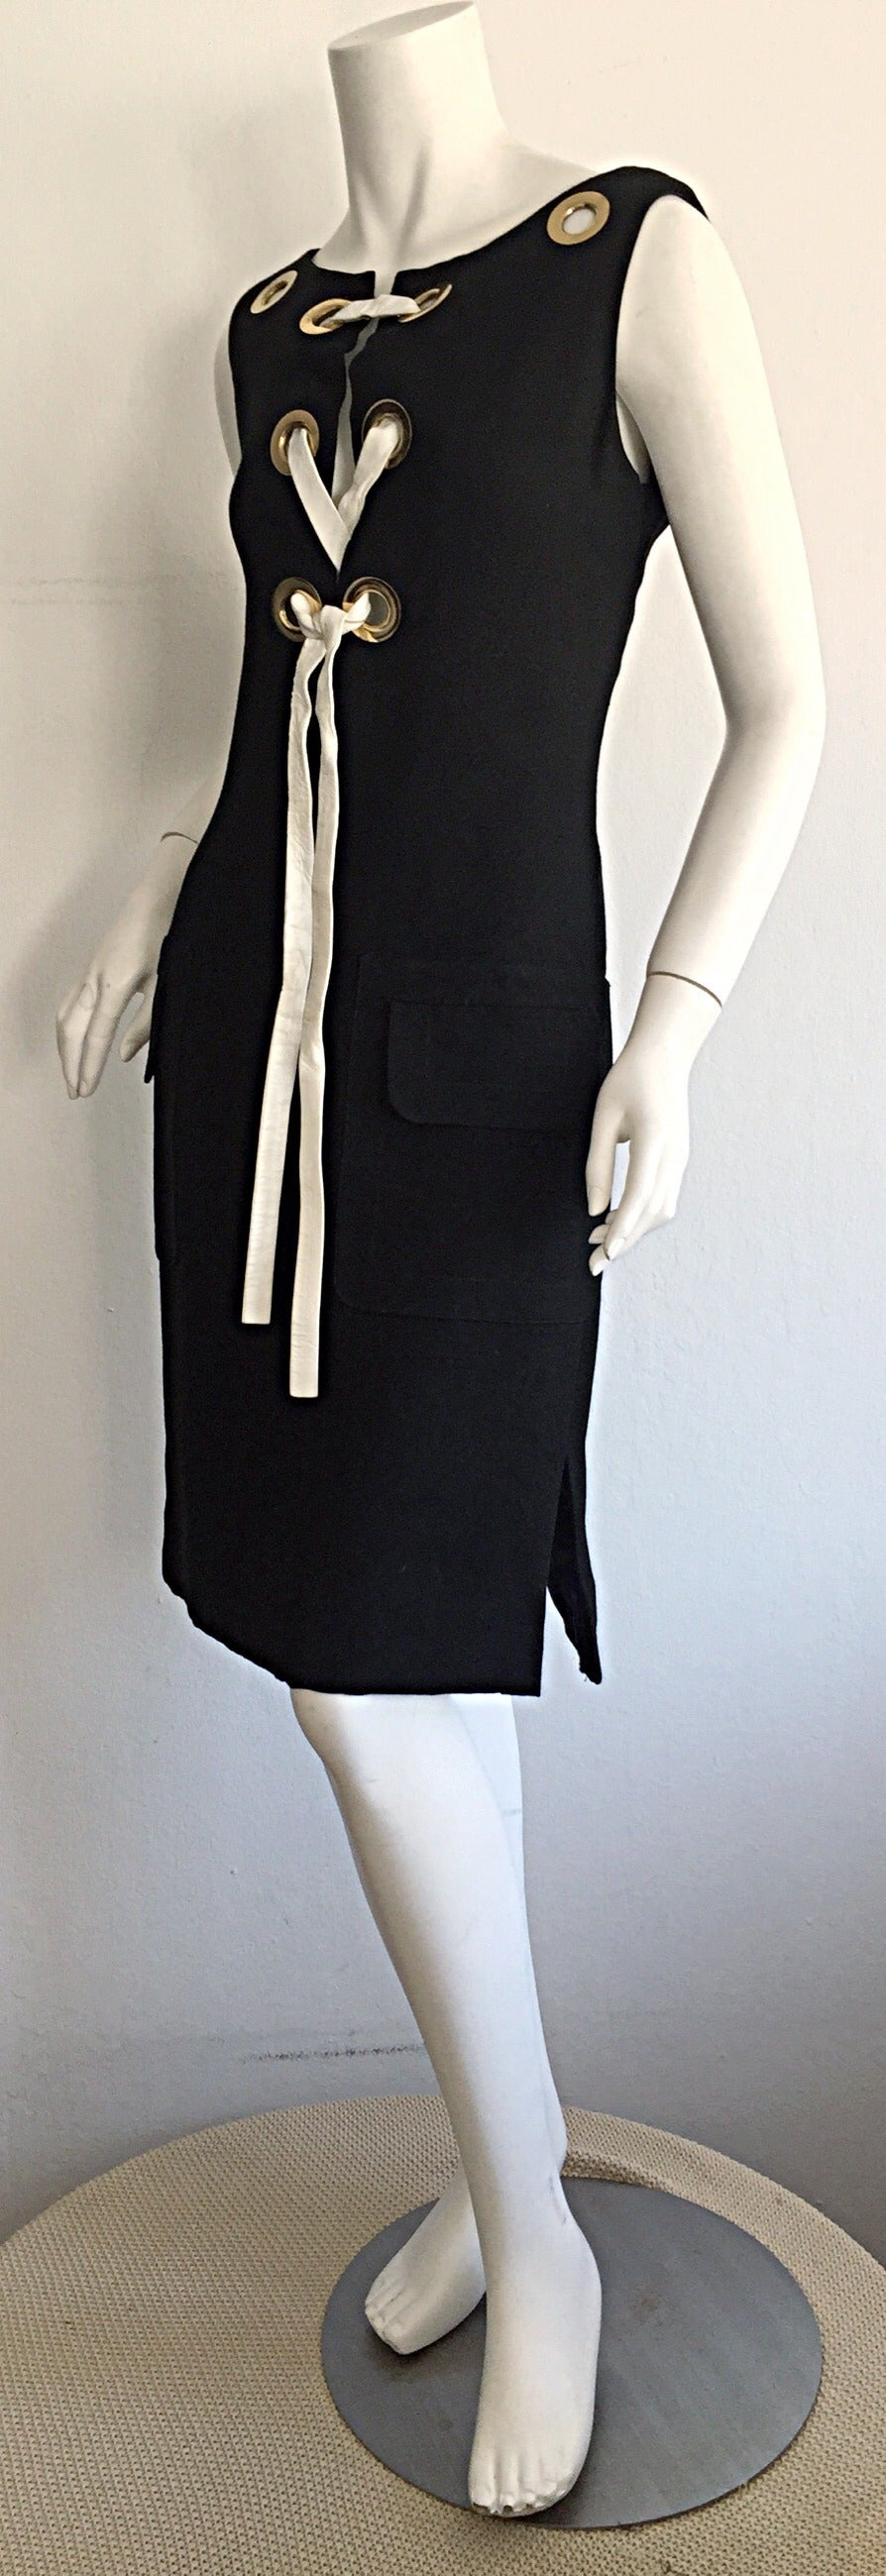 Rare 1960s Pierre Cardin Black Grommet Space Age 60s Vintage Linen Shift Dress 4